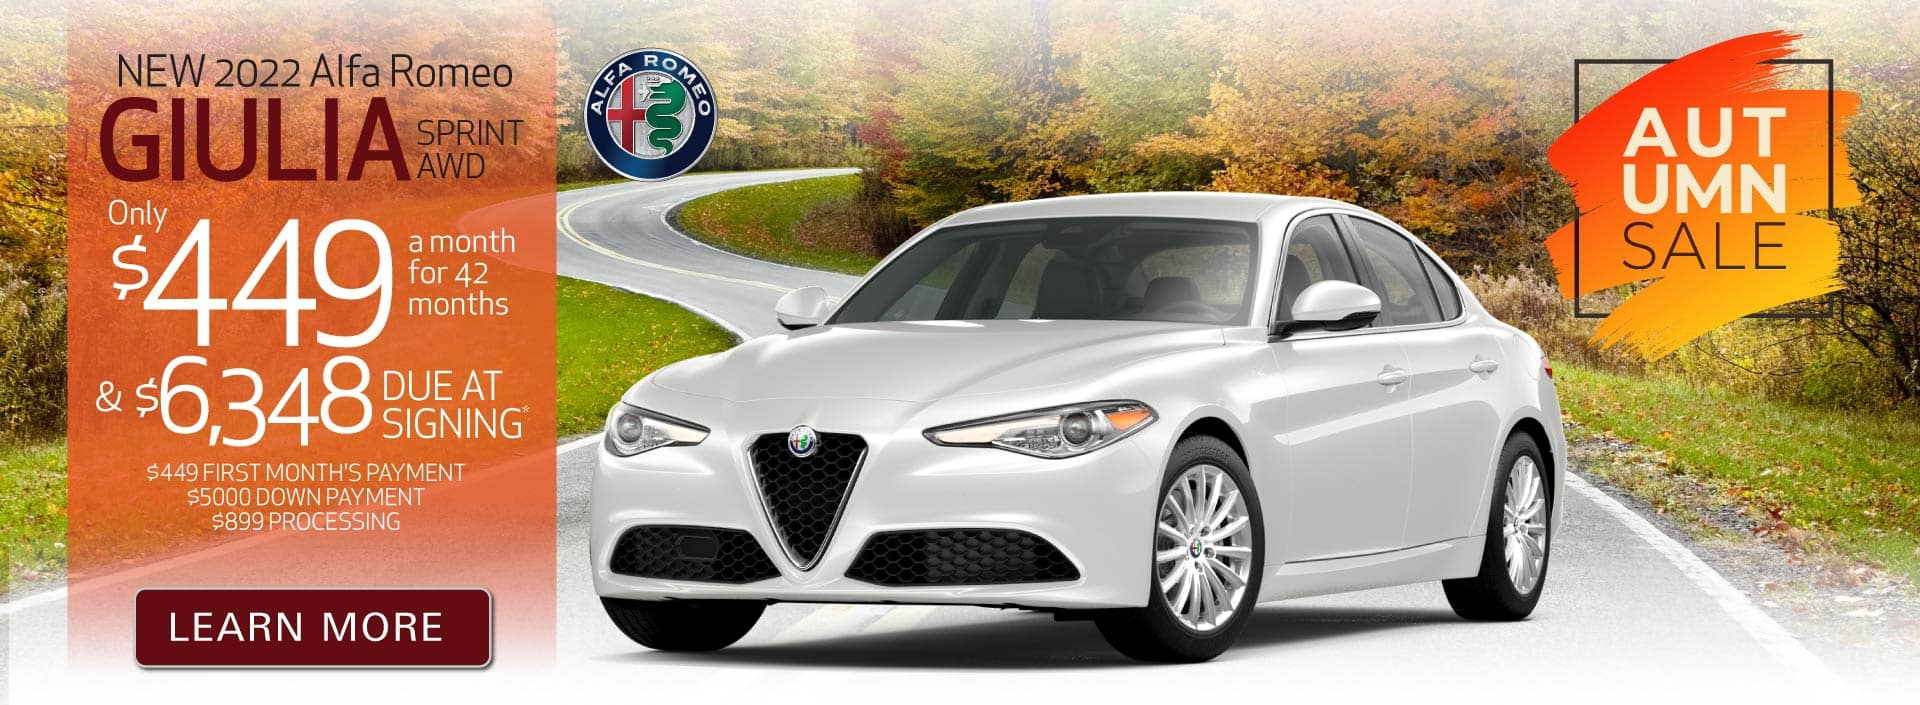 New 2022 Giulia only $449 a month | Act Now